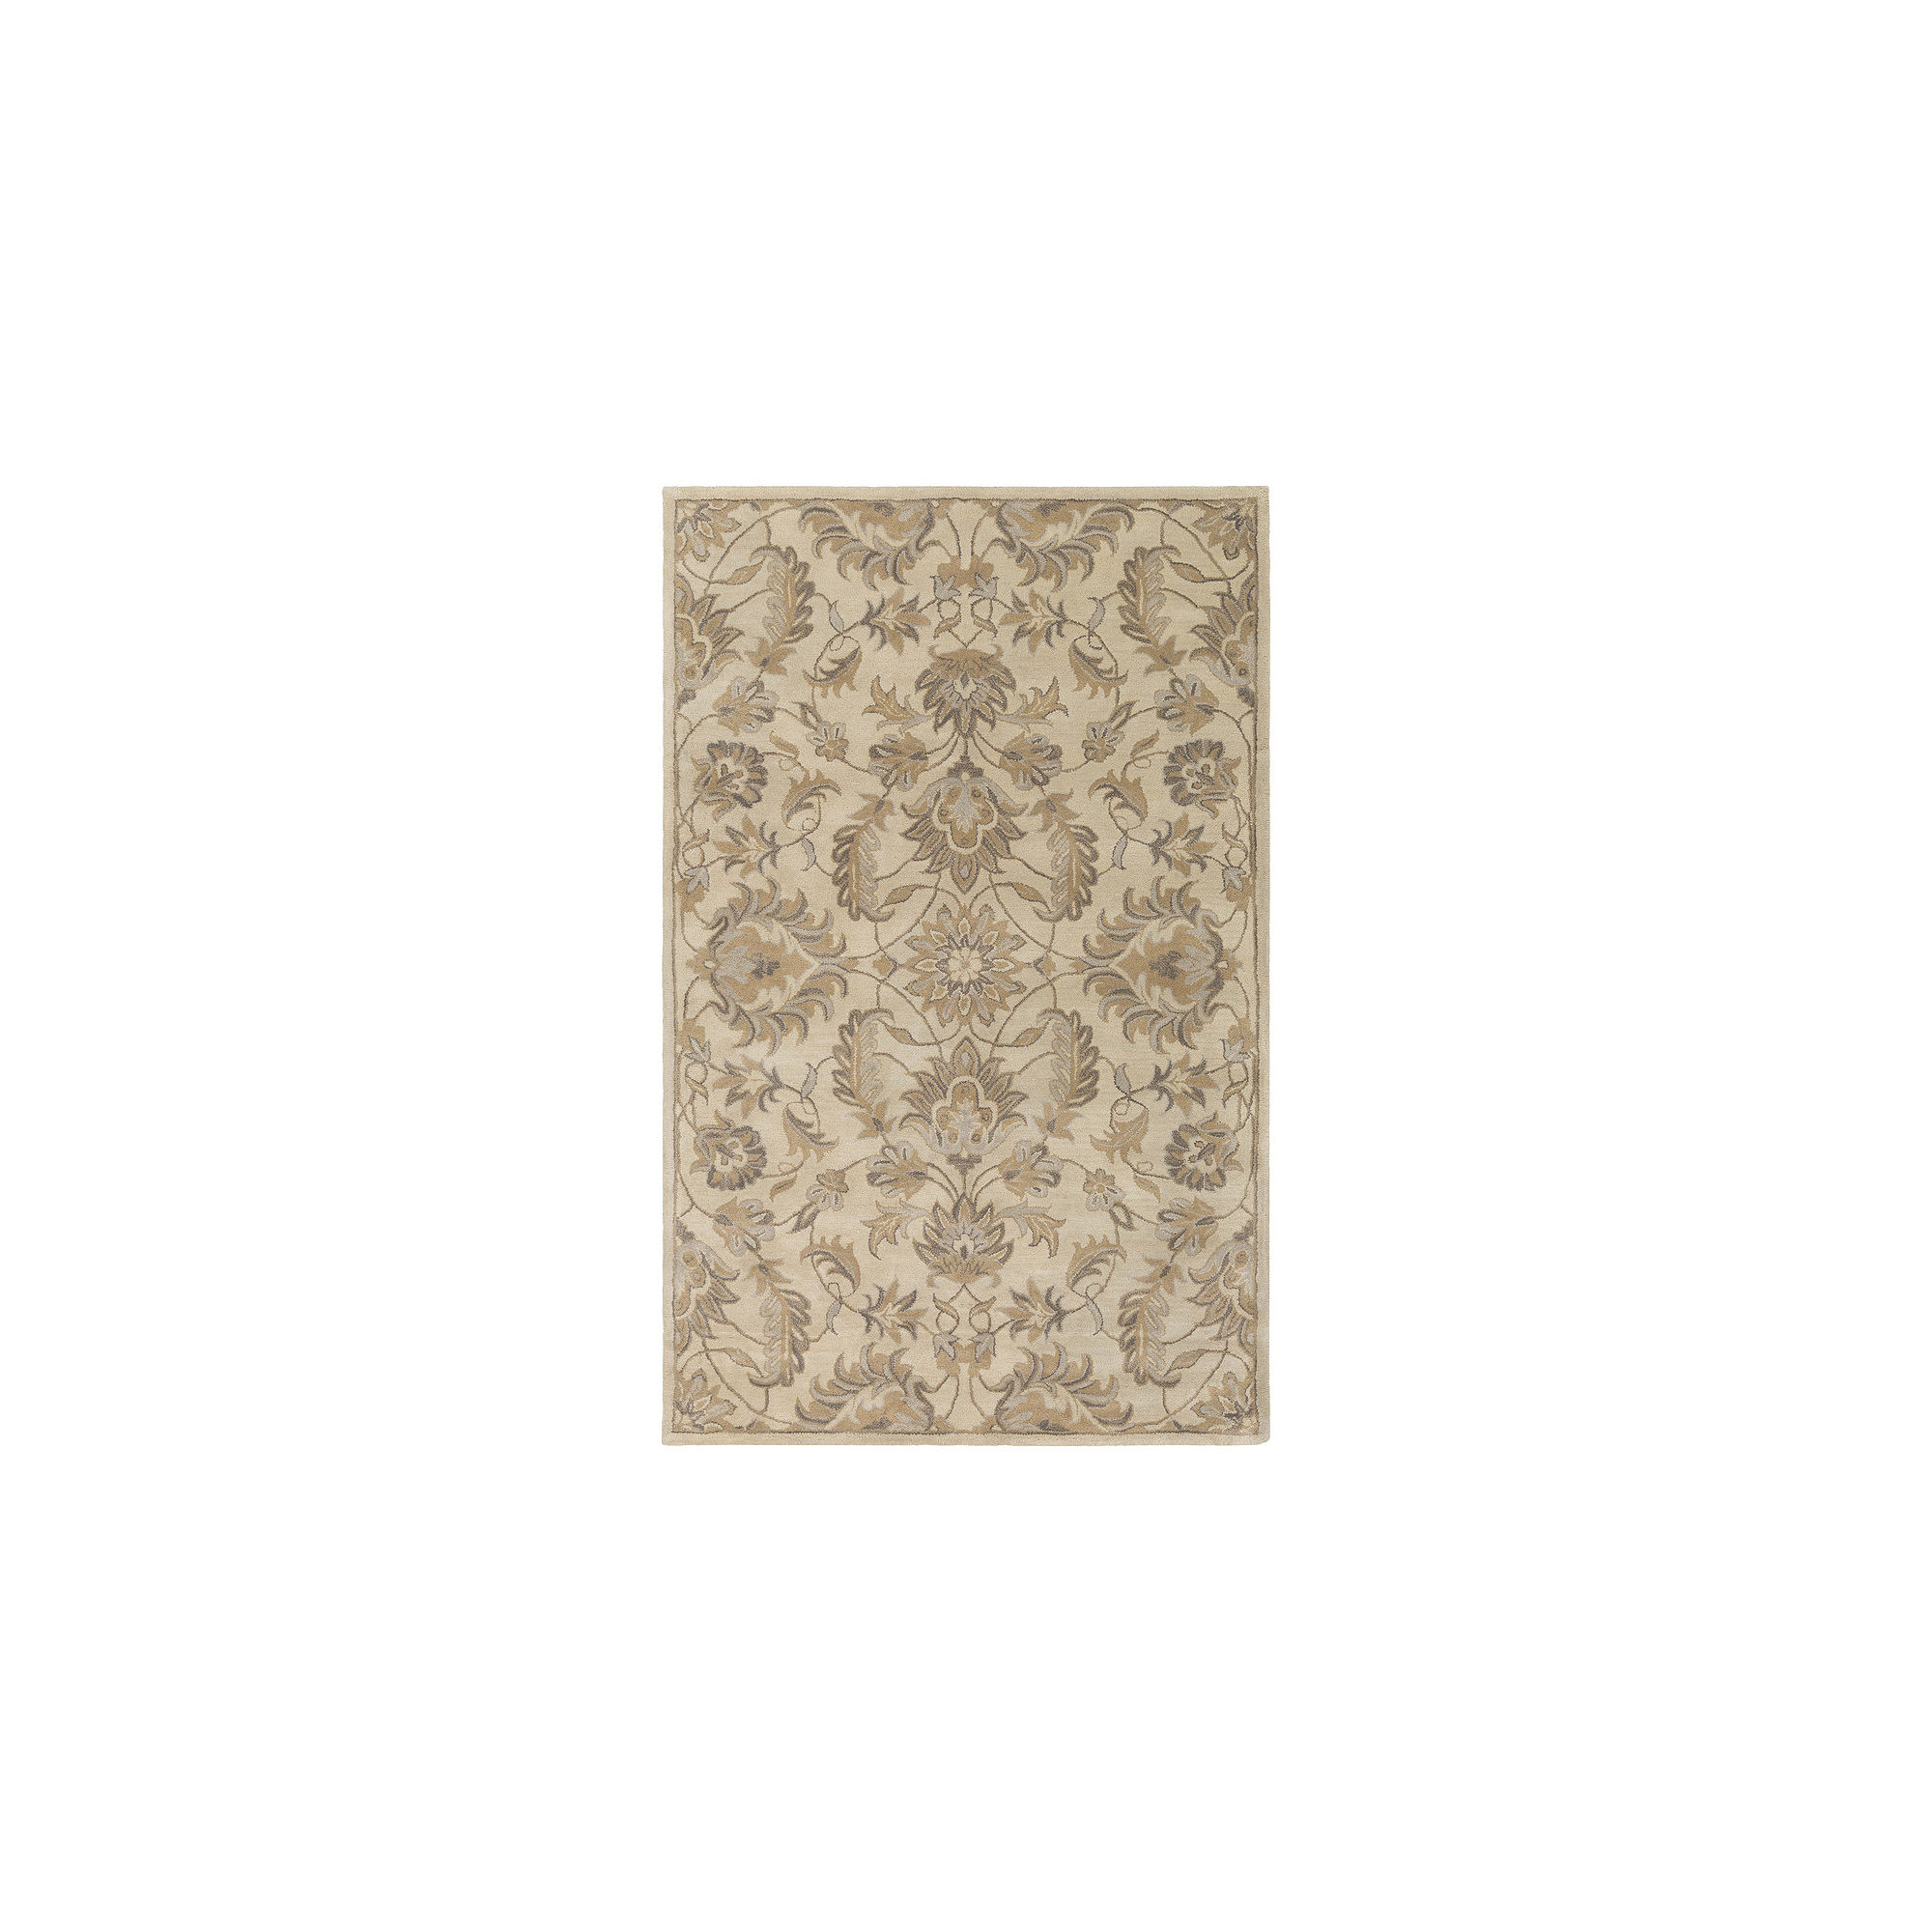 Decor 140 Cyrus Hand Tufted Rectangular Rugs